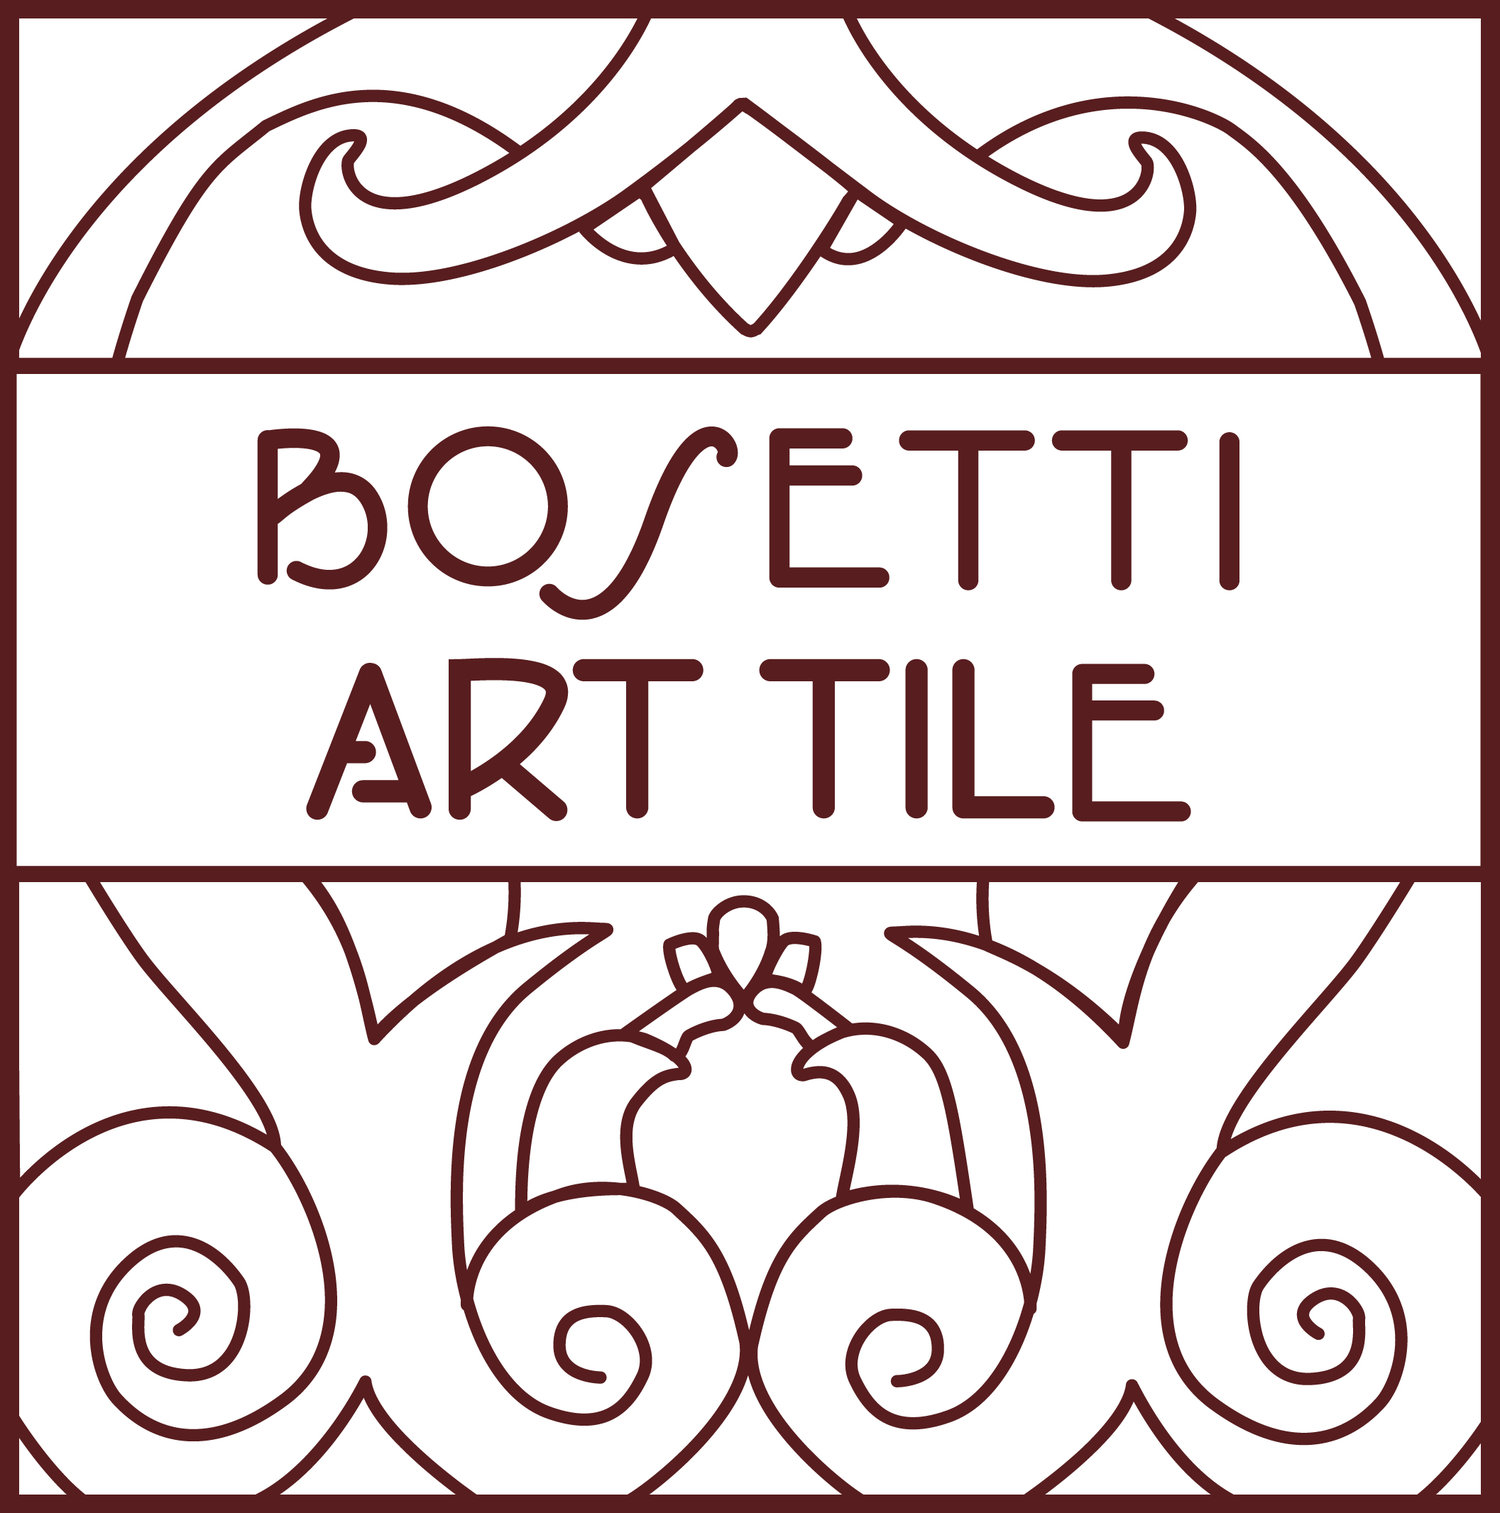 Bosetti Art tile